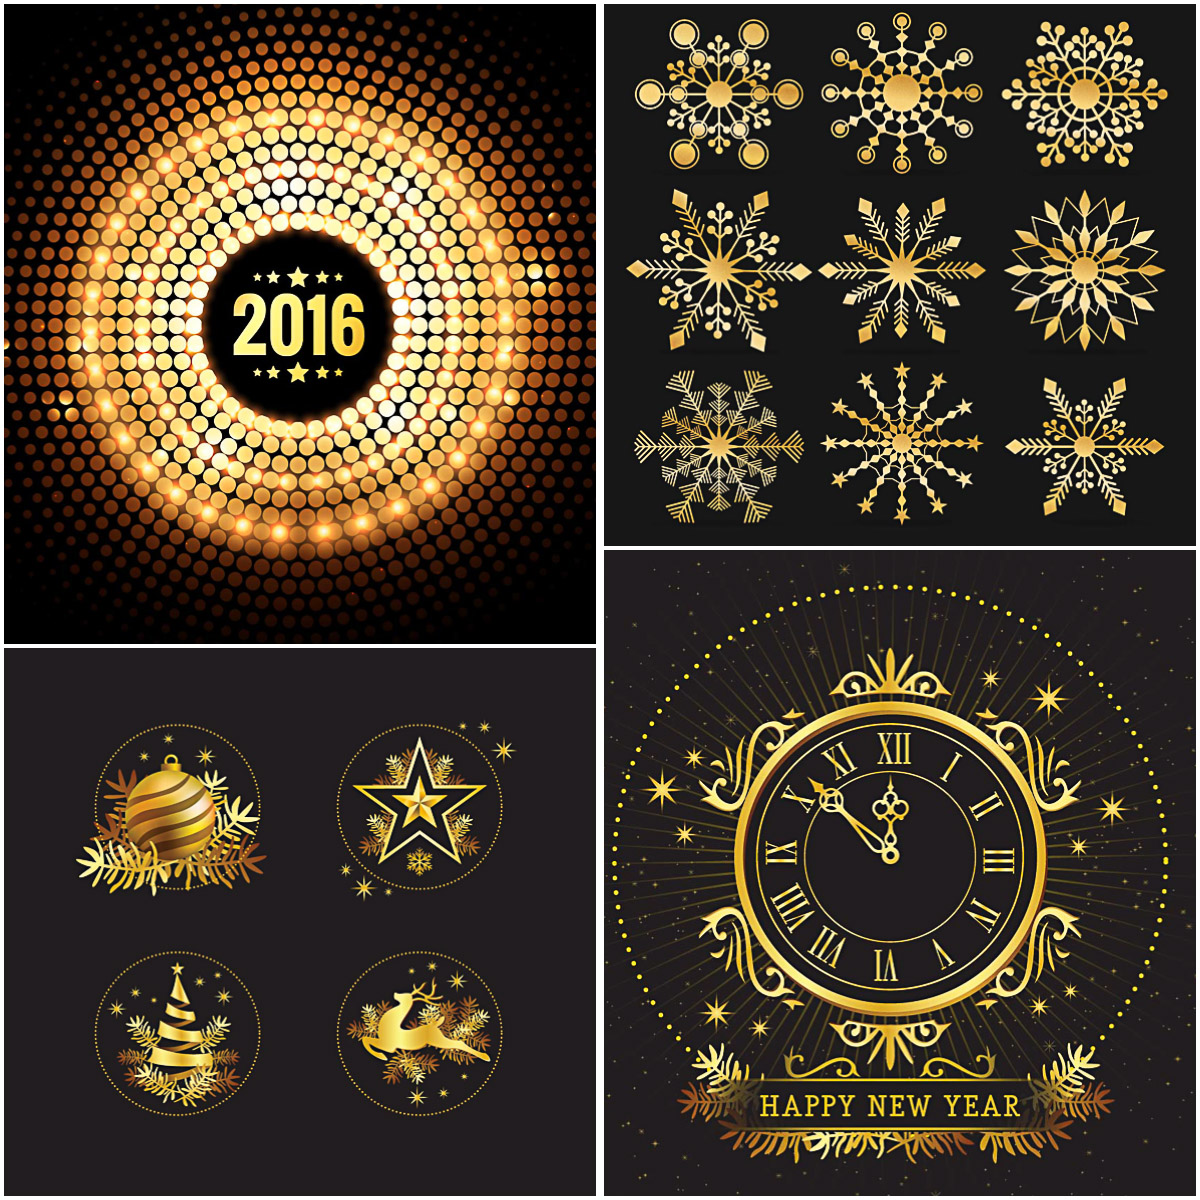 Retro golden christmas and New Year design elements free vector